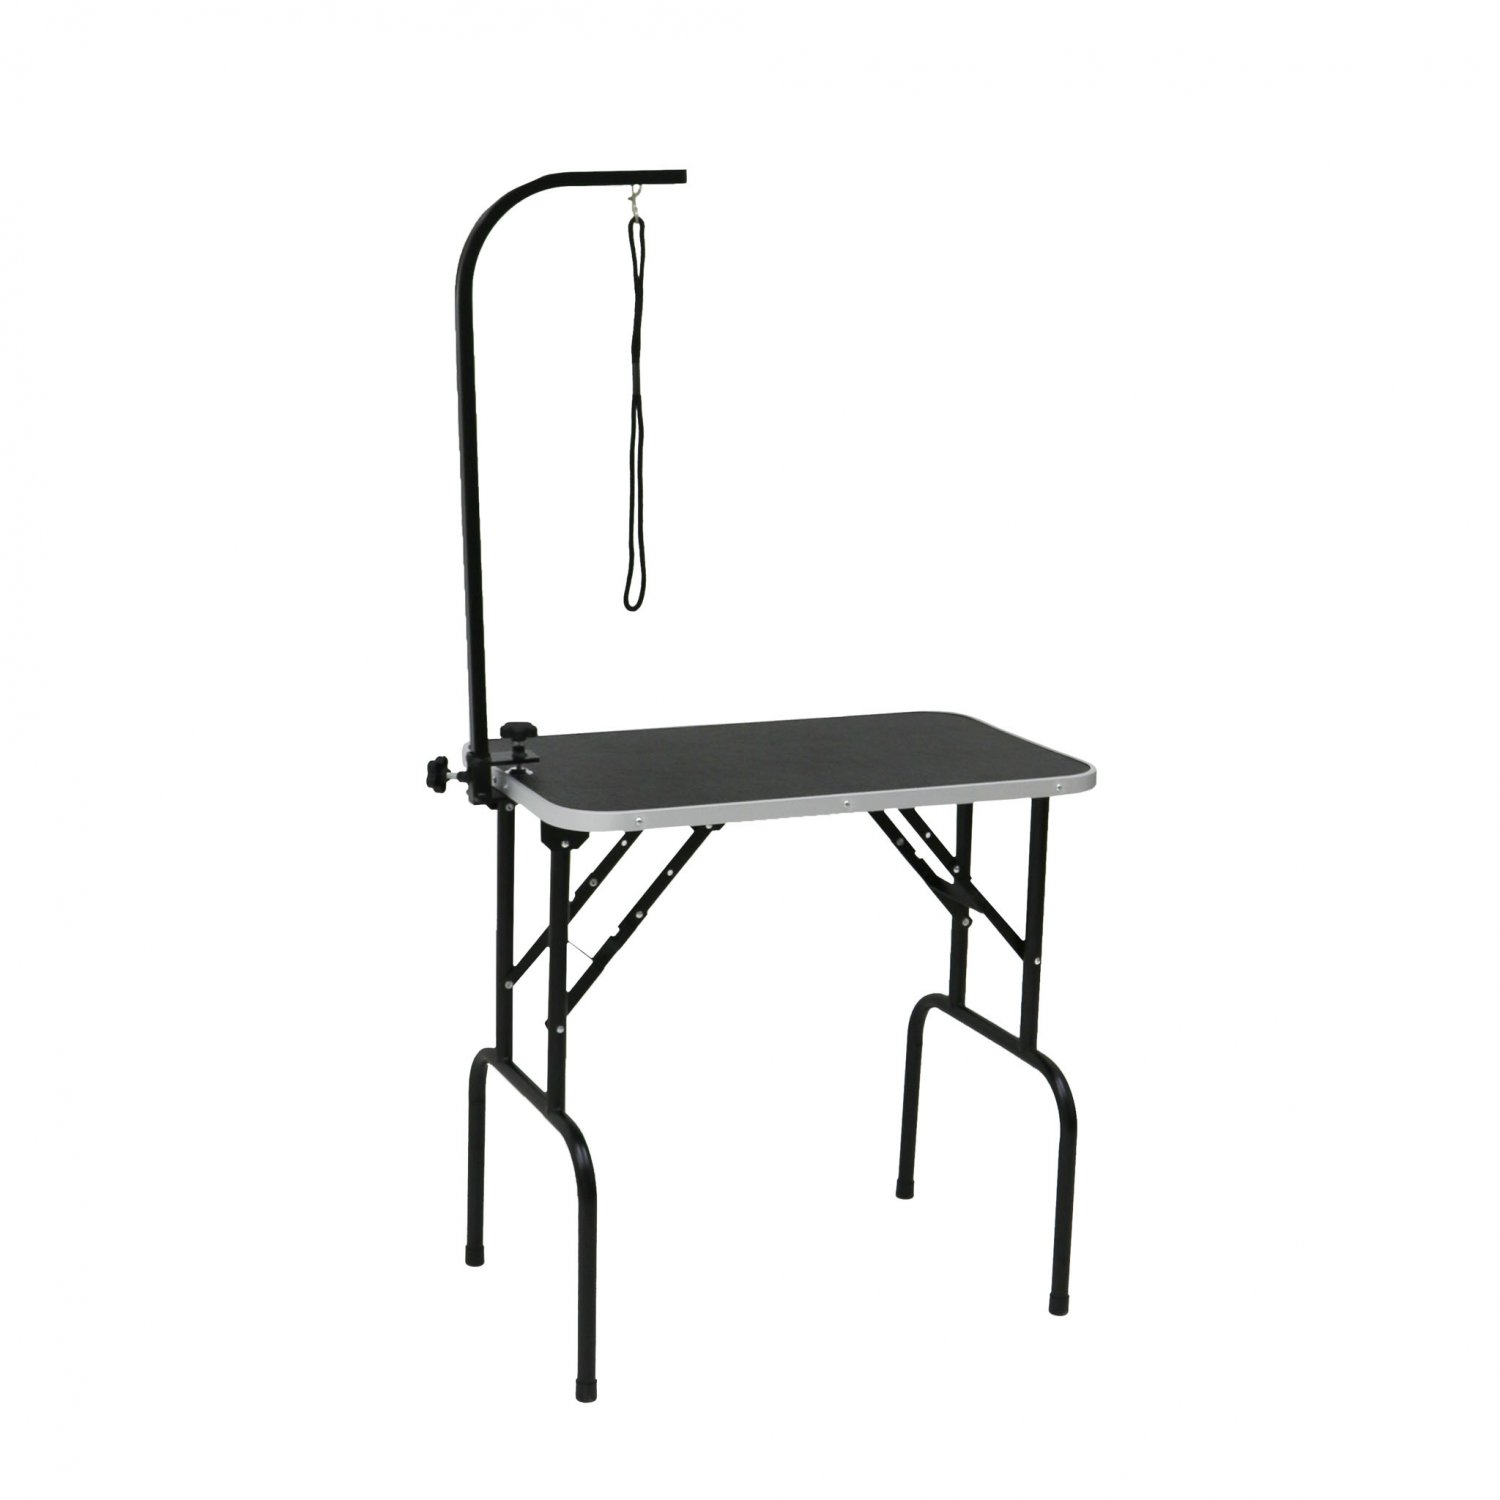 Dog Grooming Table Product : Heavy duty folding dog grooming table adjustable